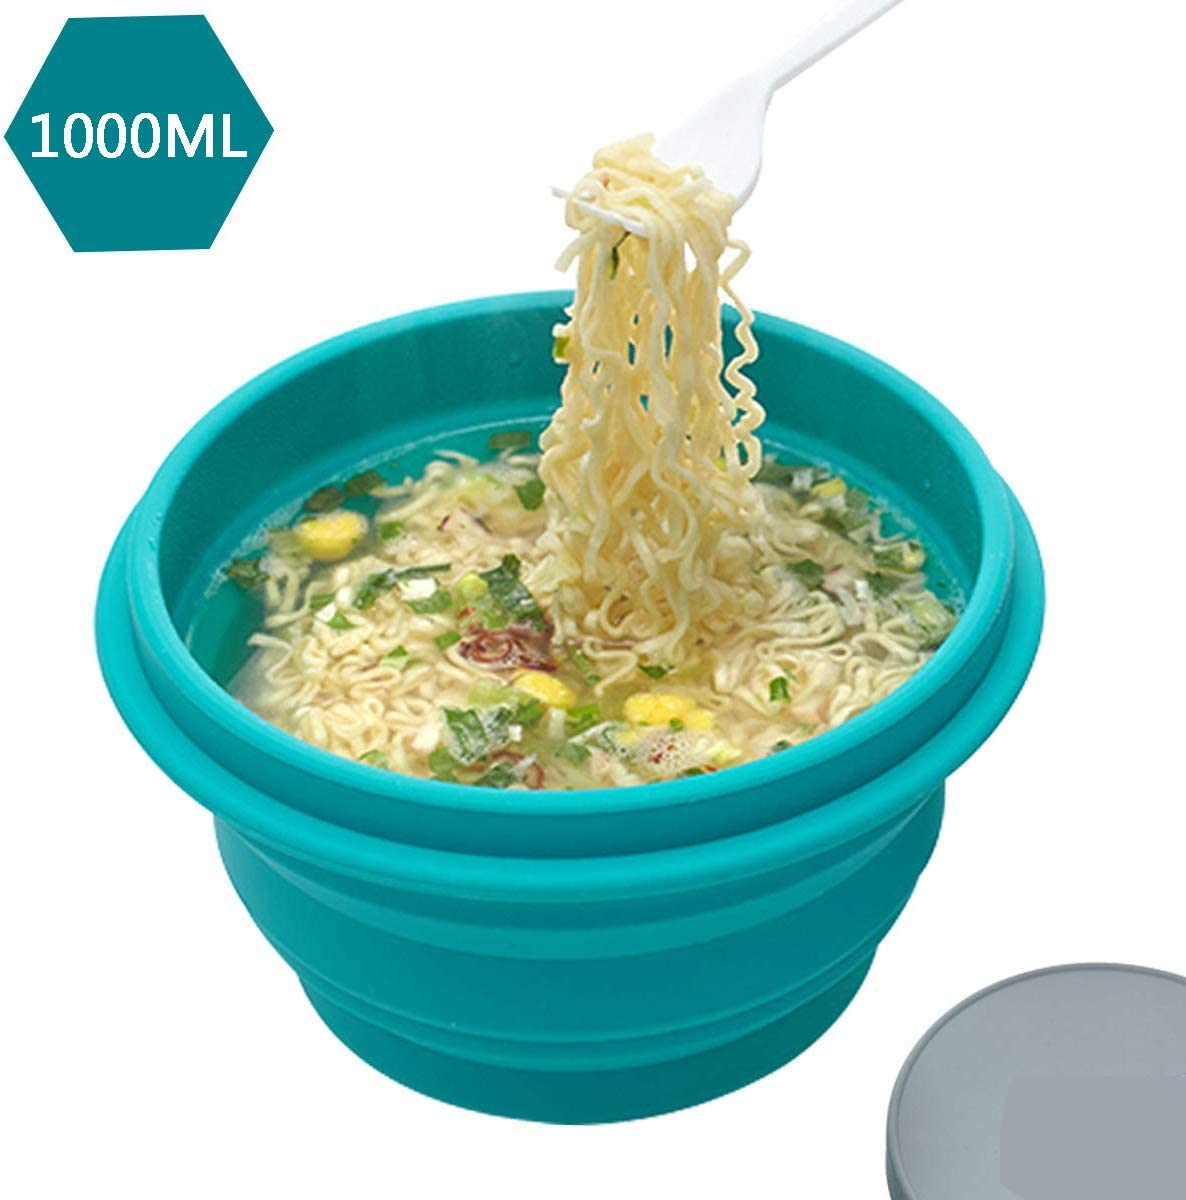 Silicone Collapsible Bowl with Lid 1000ML for Travel Camping Hiking, Folding Travel Bowl Portable for Outdoor and Indoor